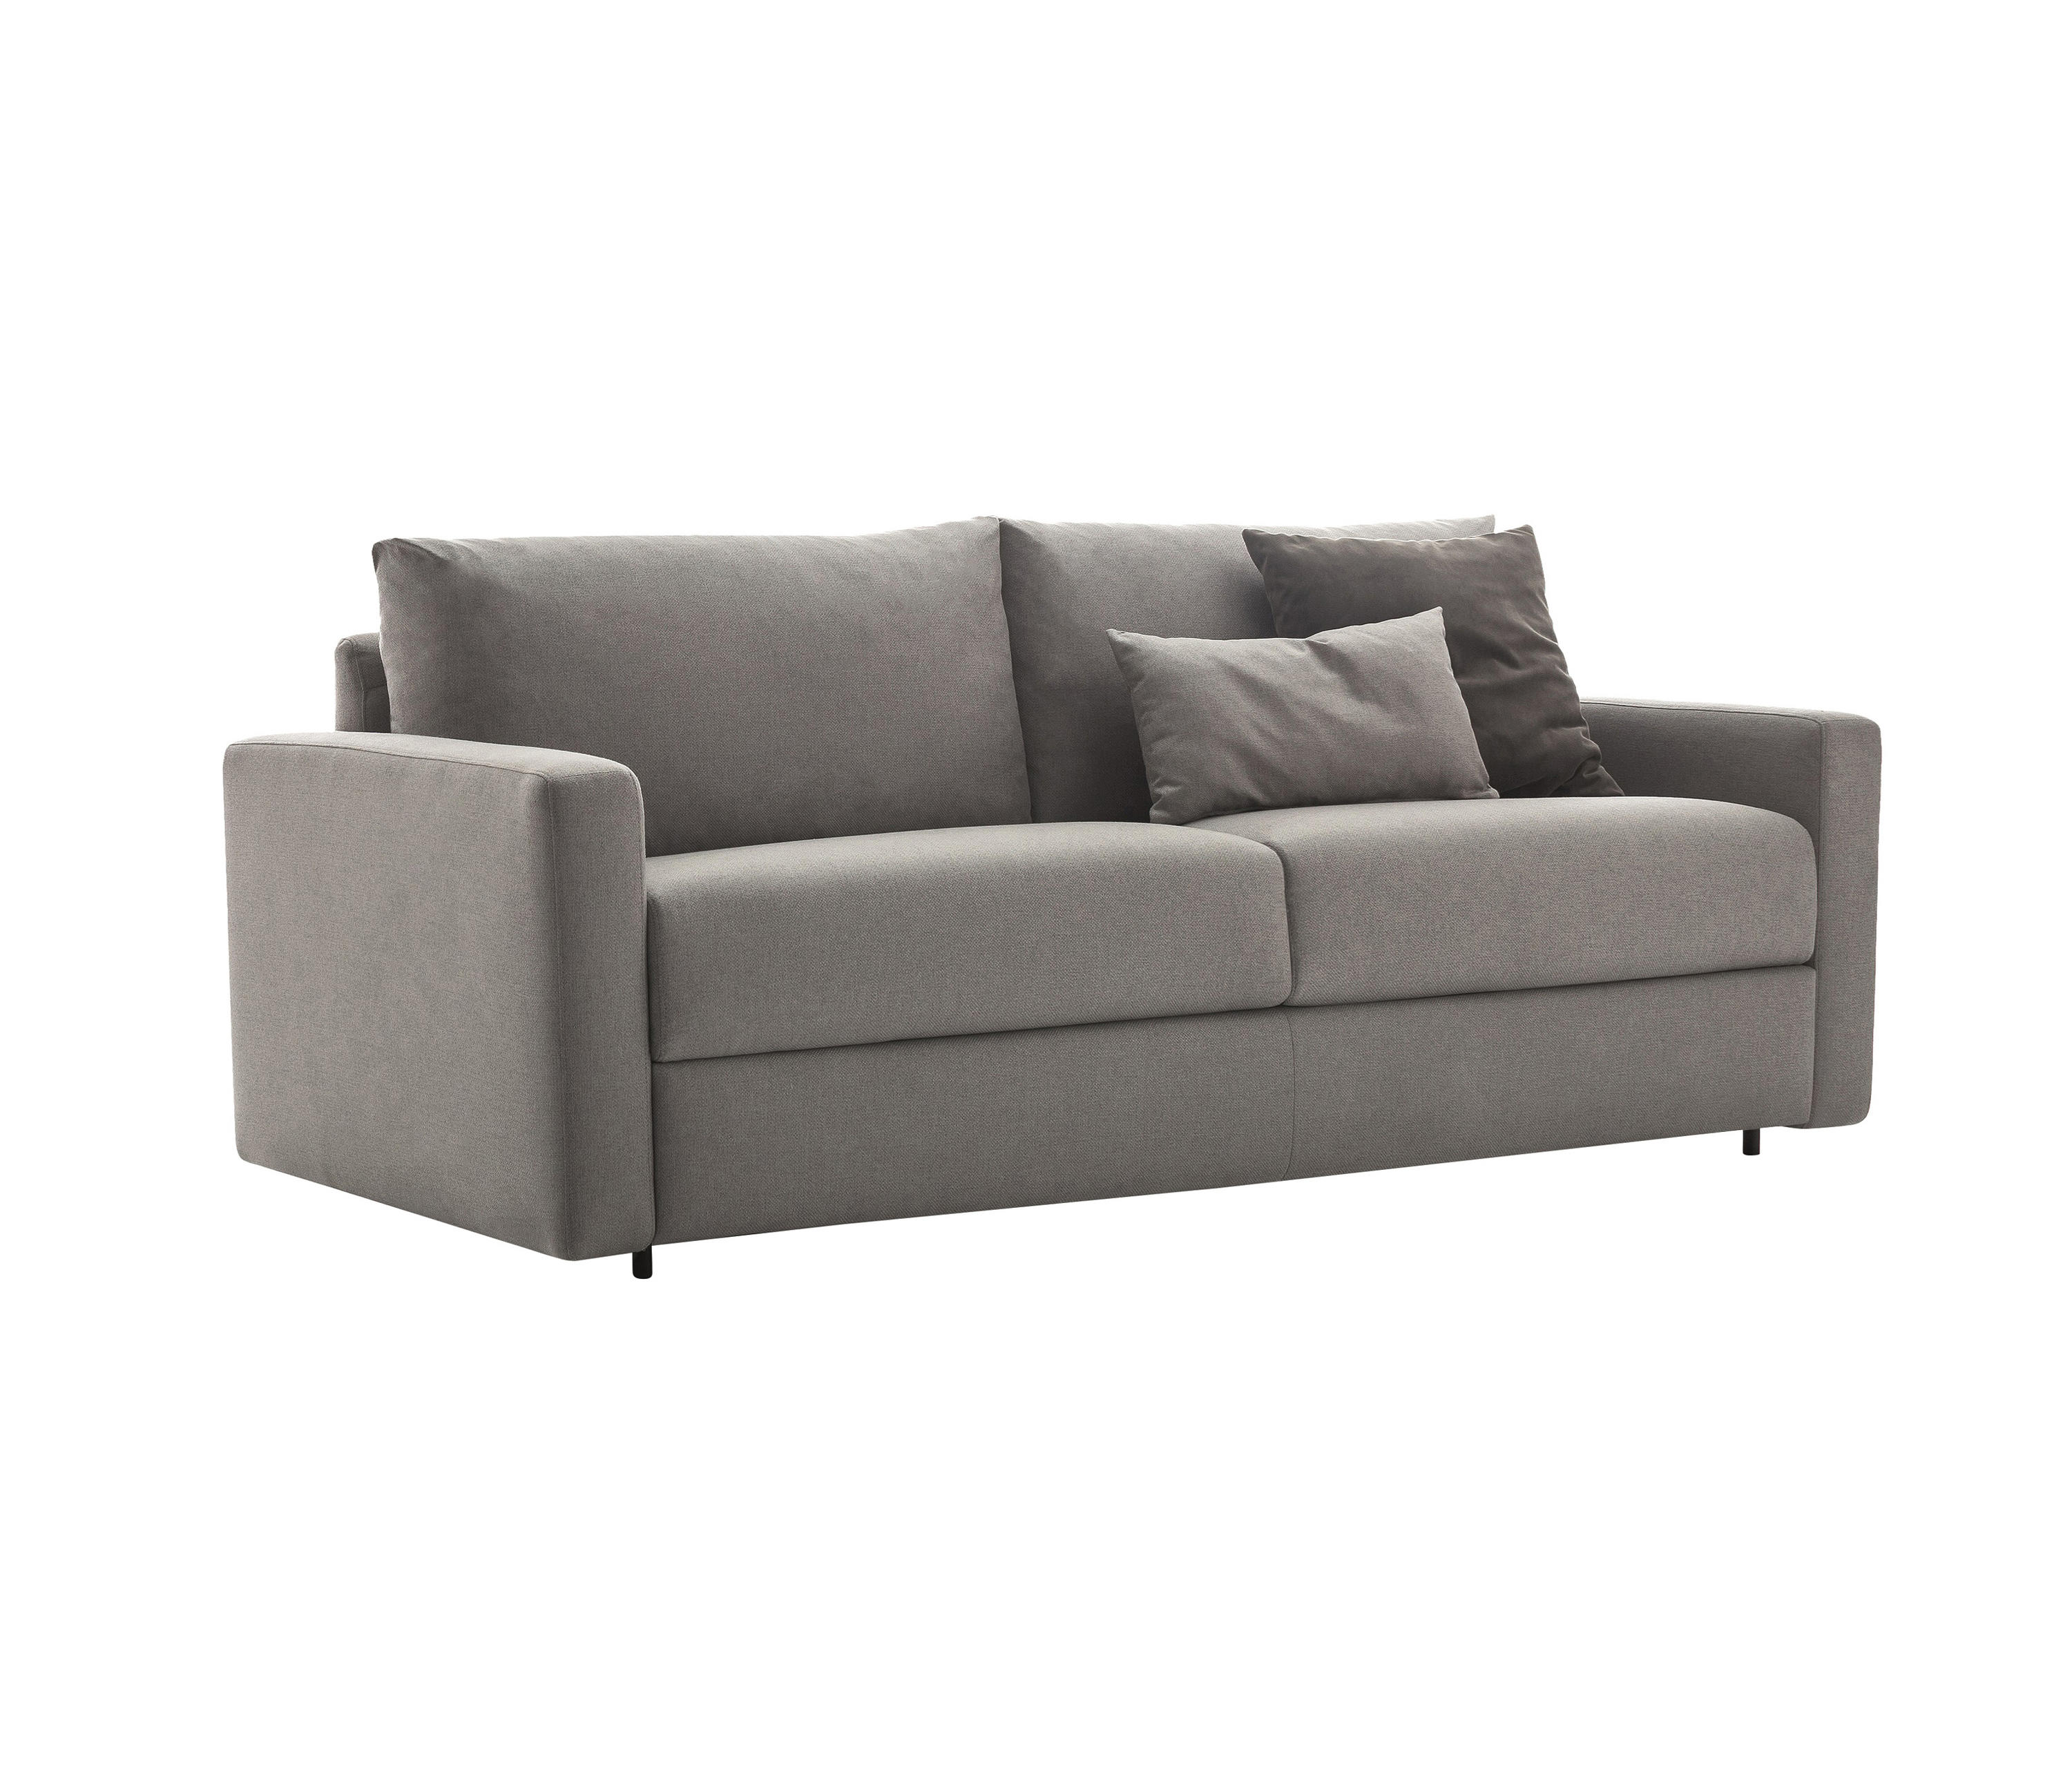 Freedom Furniture Sofa Freedom Sofas Freedom Furniture And Homewares Thesofa